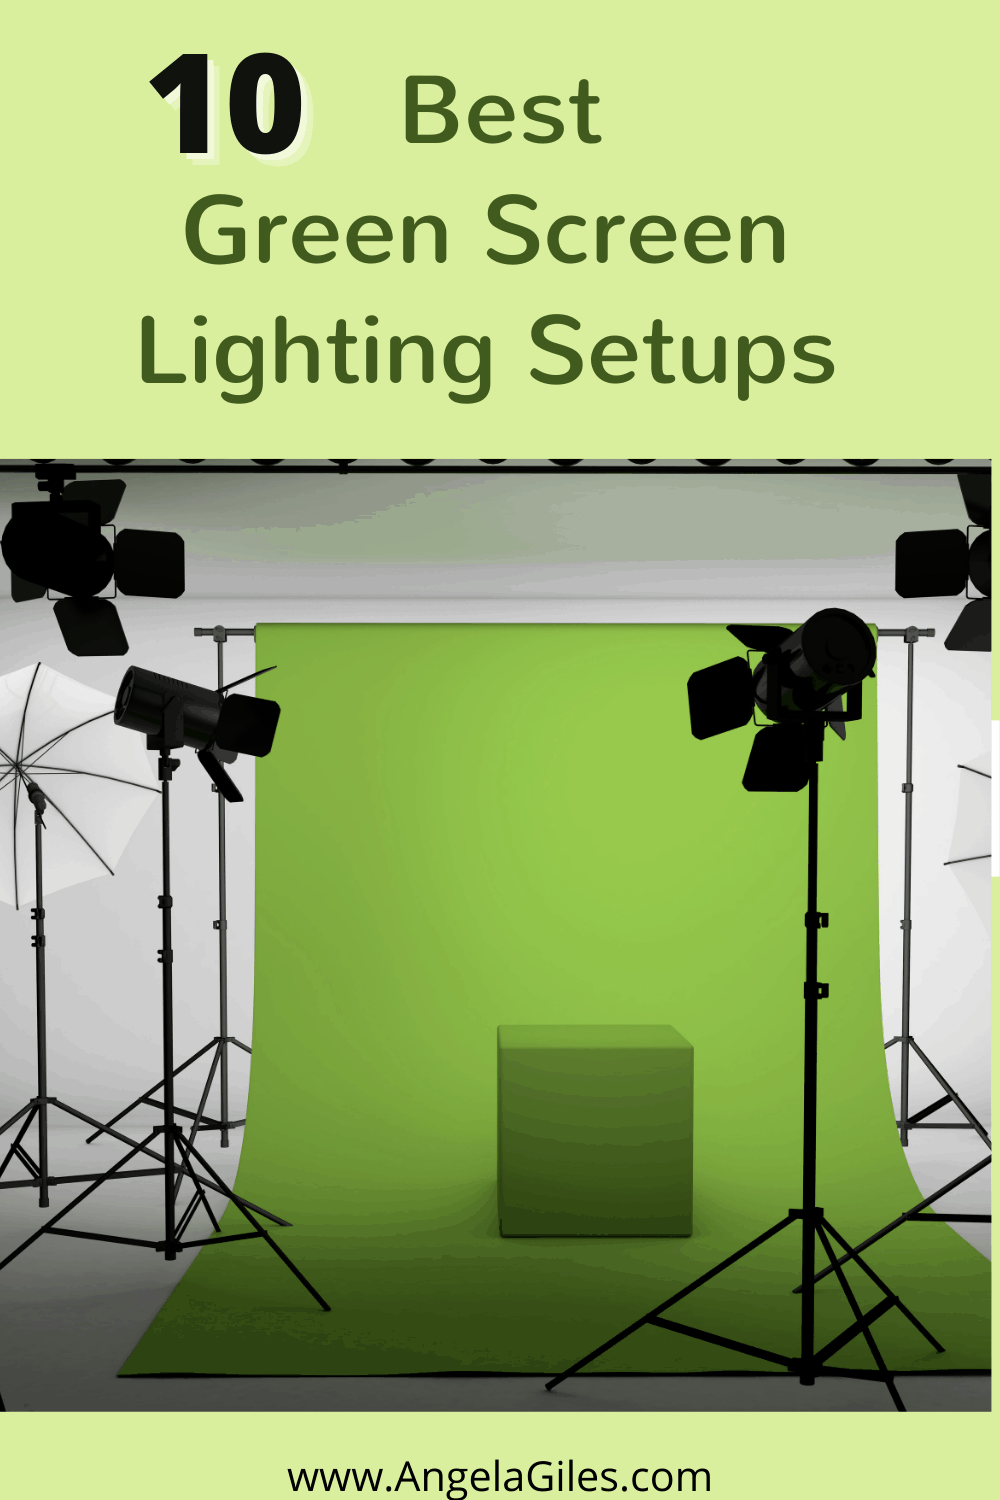 The Top Ten Best Green Screen Lighting for Super Clear Video and Photos